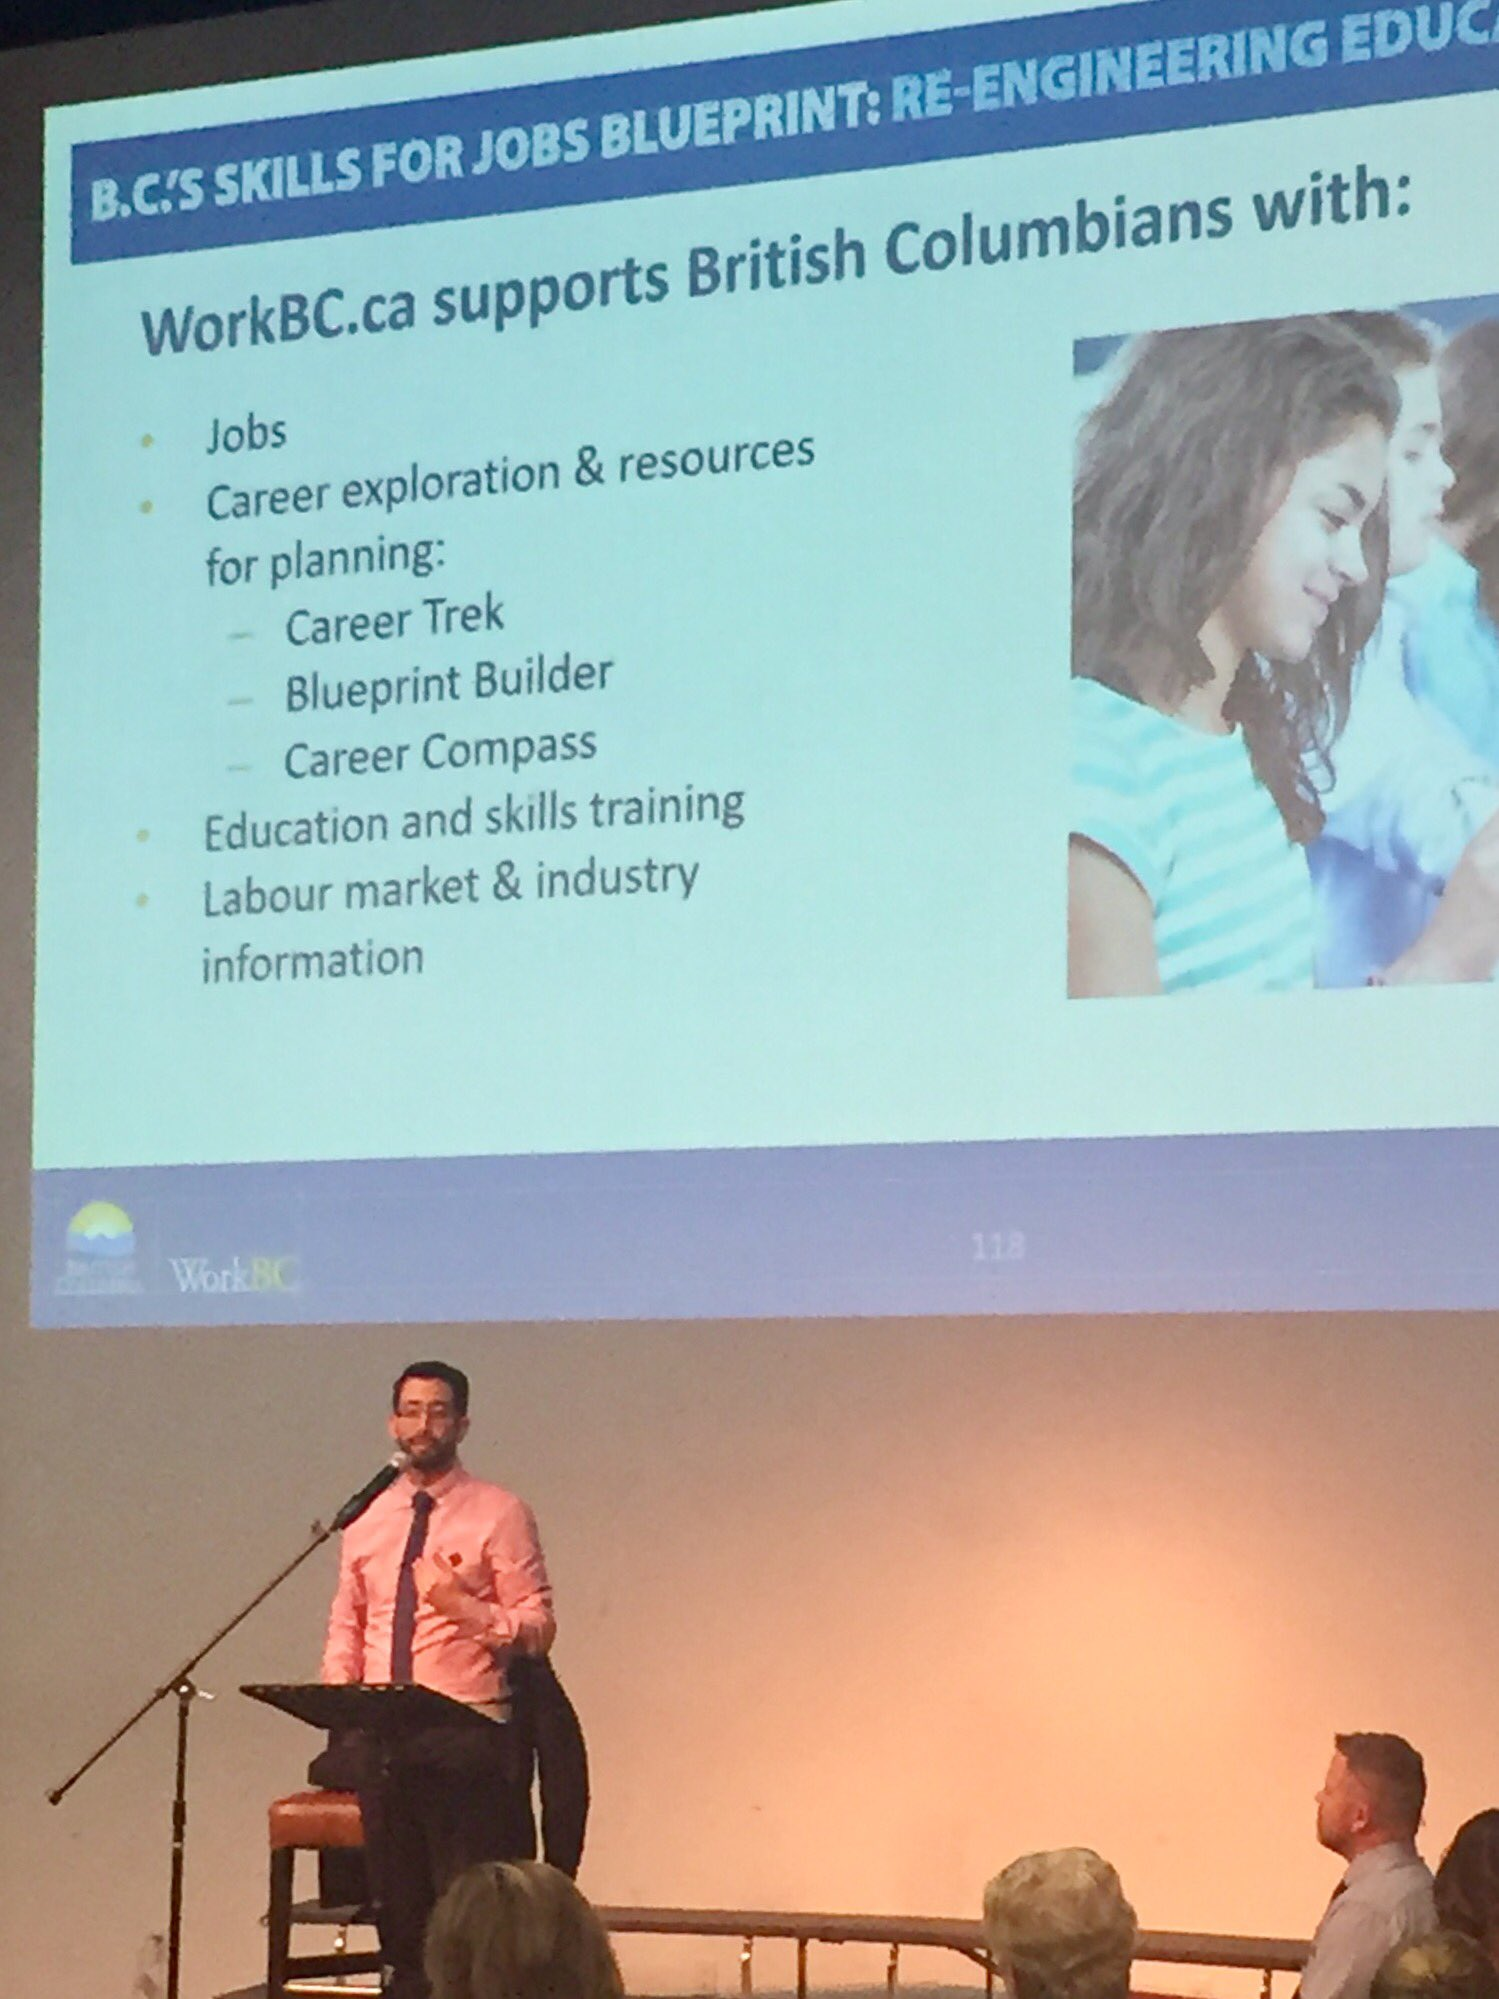 Gordon li on twitter implementation ideas and potential models ideas and potential models for career courses partner wdl engberssean makerday ace it itabc find your fit workbc httpst0vfz2zwqp4 malvernweather Choice Image